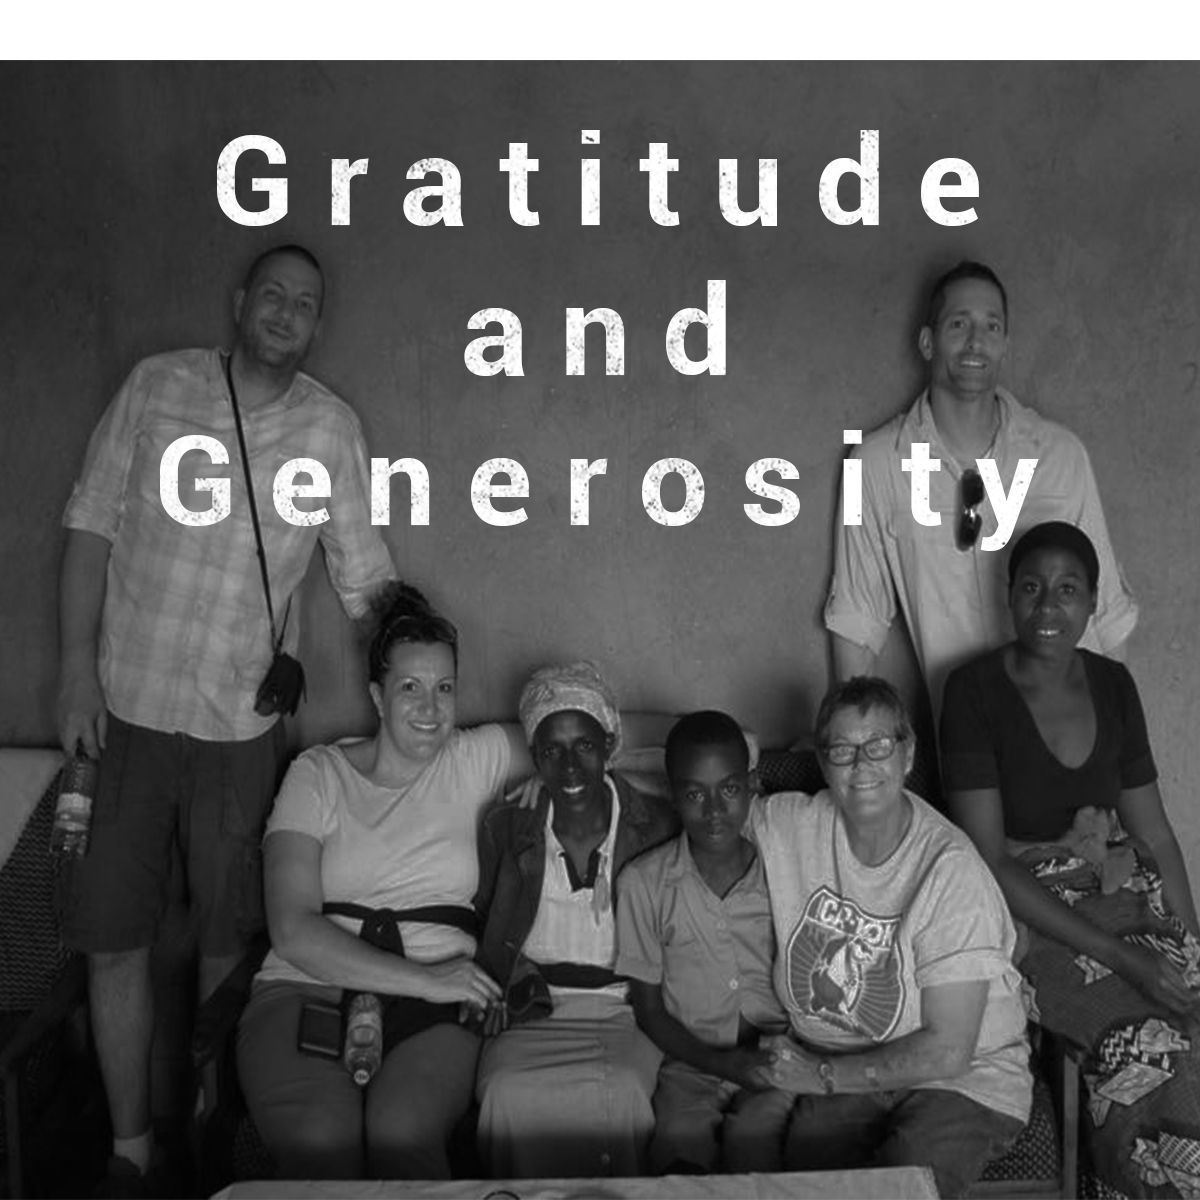 Living with an attitude of gratitude and generosity is of vital importance to Life in the City. Being grateful for each moment we have, no matter what we are experiencing, is key to living the abundant life. We believe in living generously out of that abundance, refusing to be captivated by a scarcity mindset. NOTE: This picture was taken during a mission trip to Rwanda.